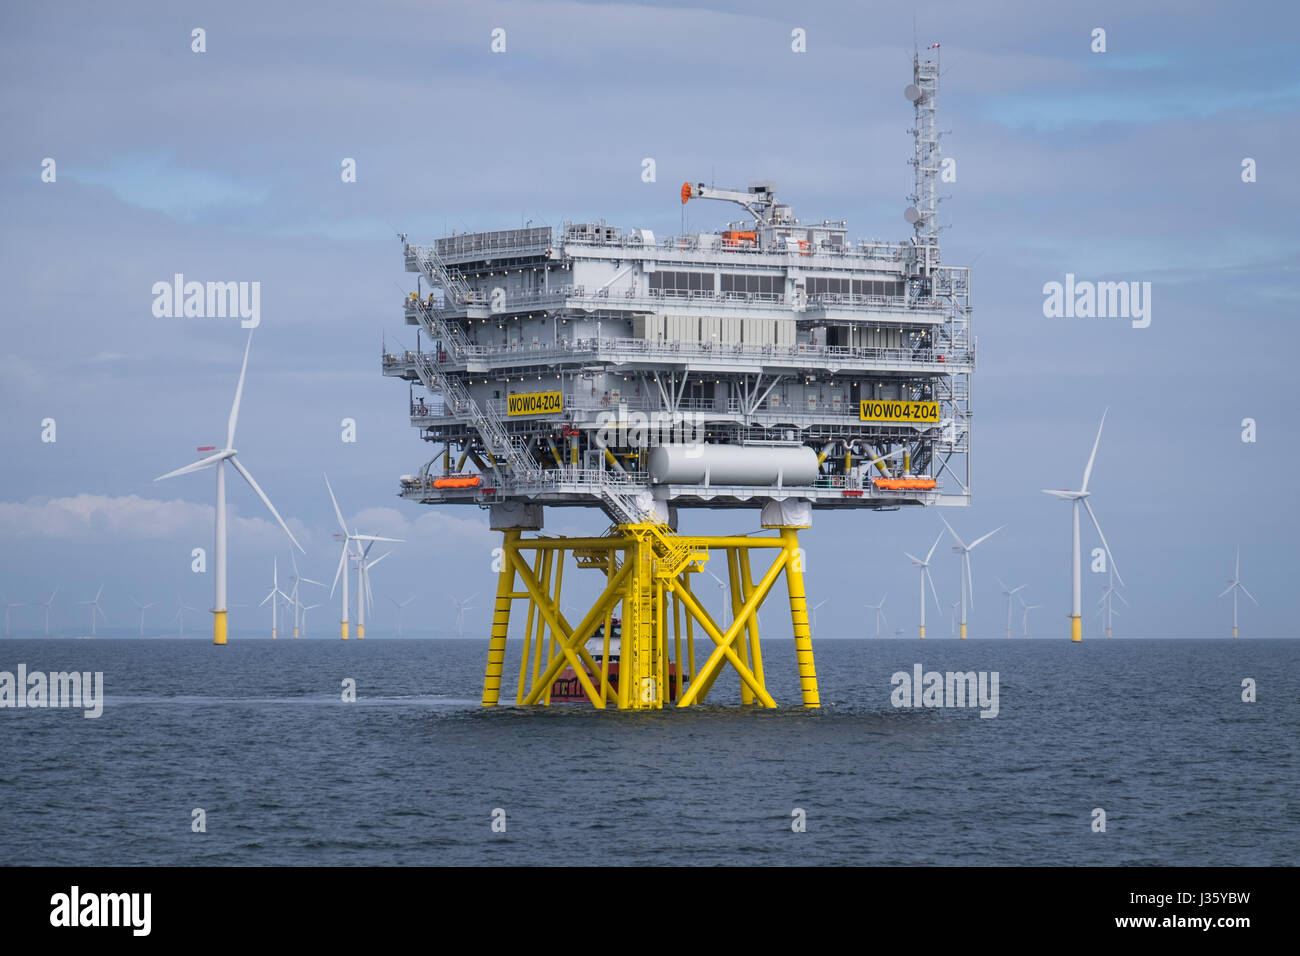 Walney Extension Offshore Wind Farm - Stock Image